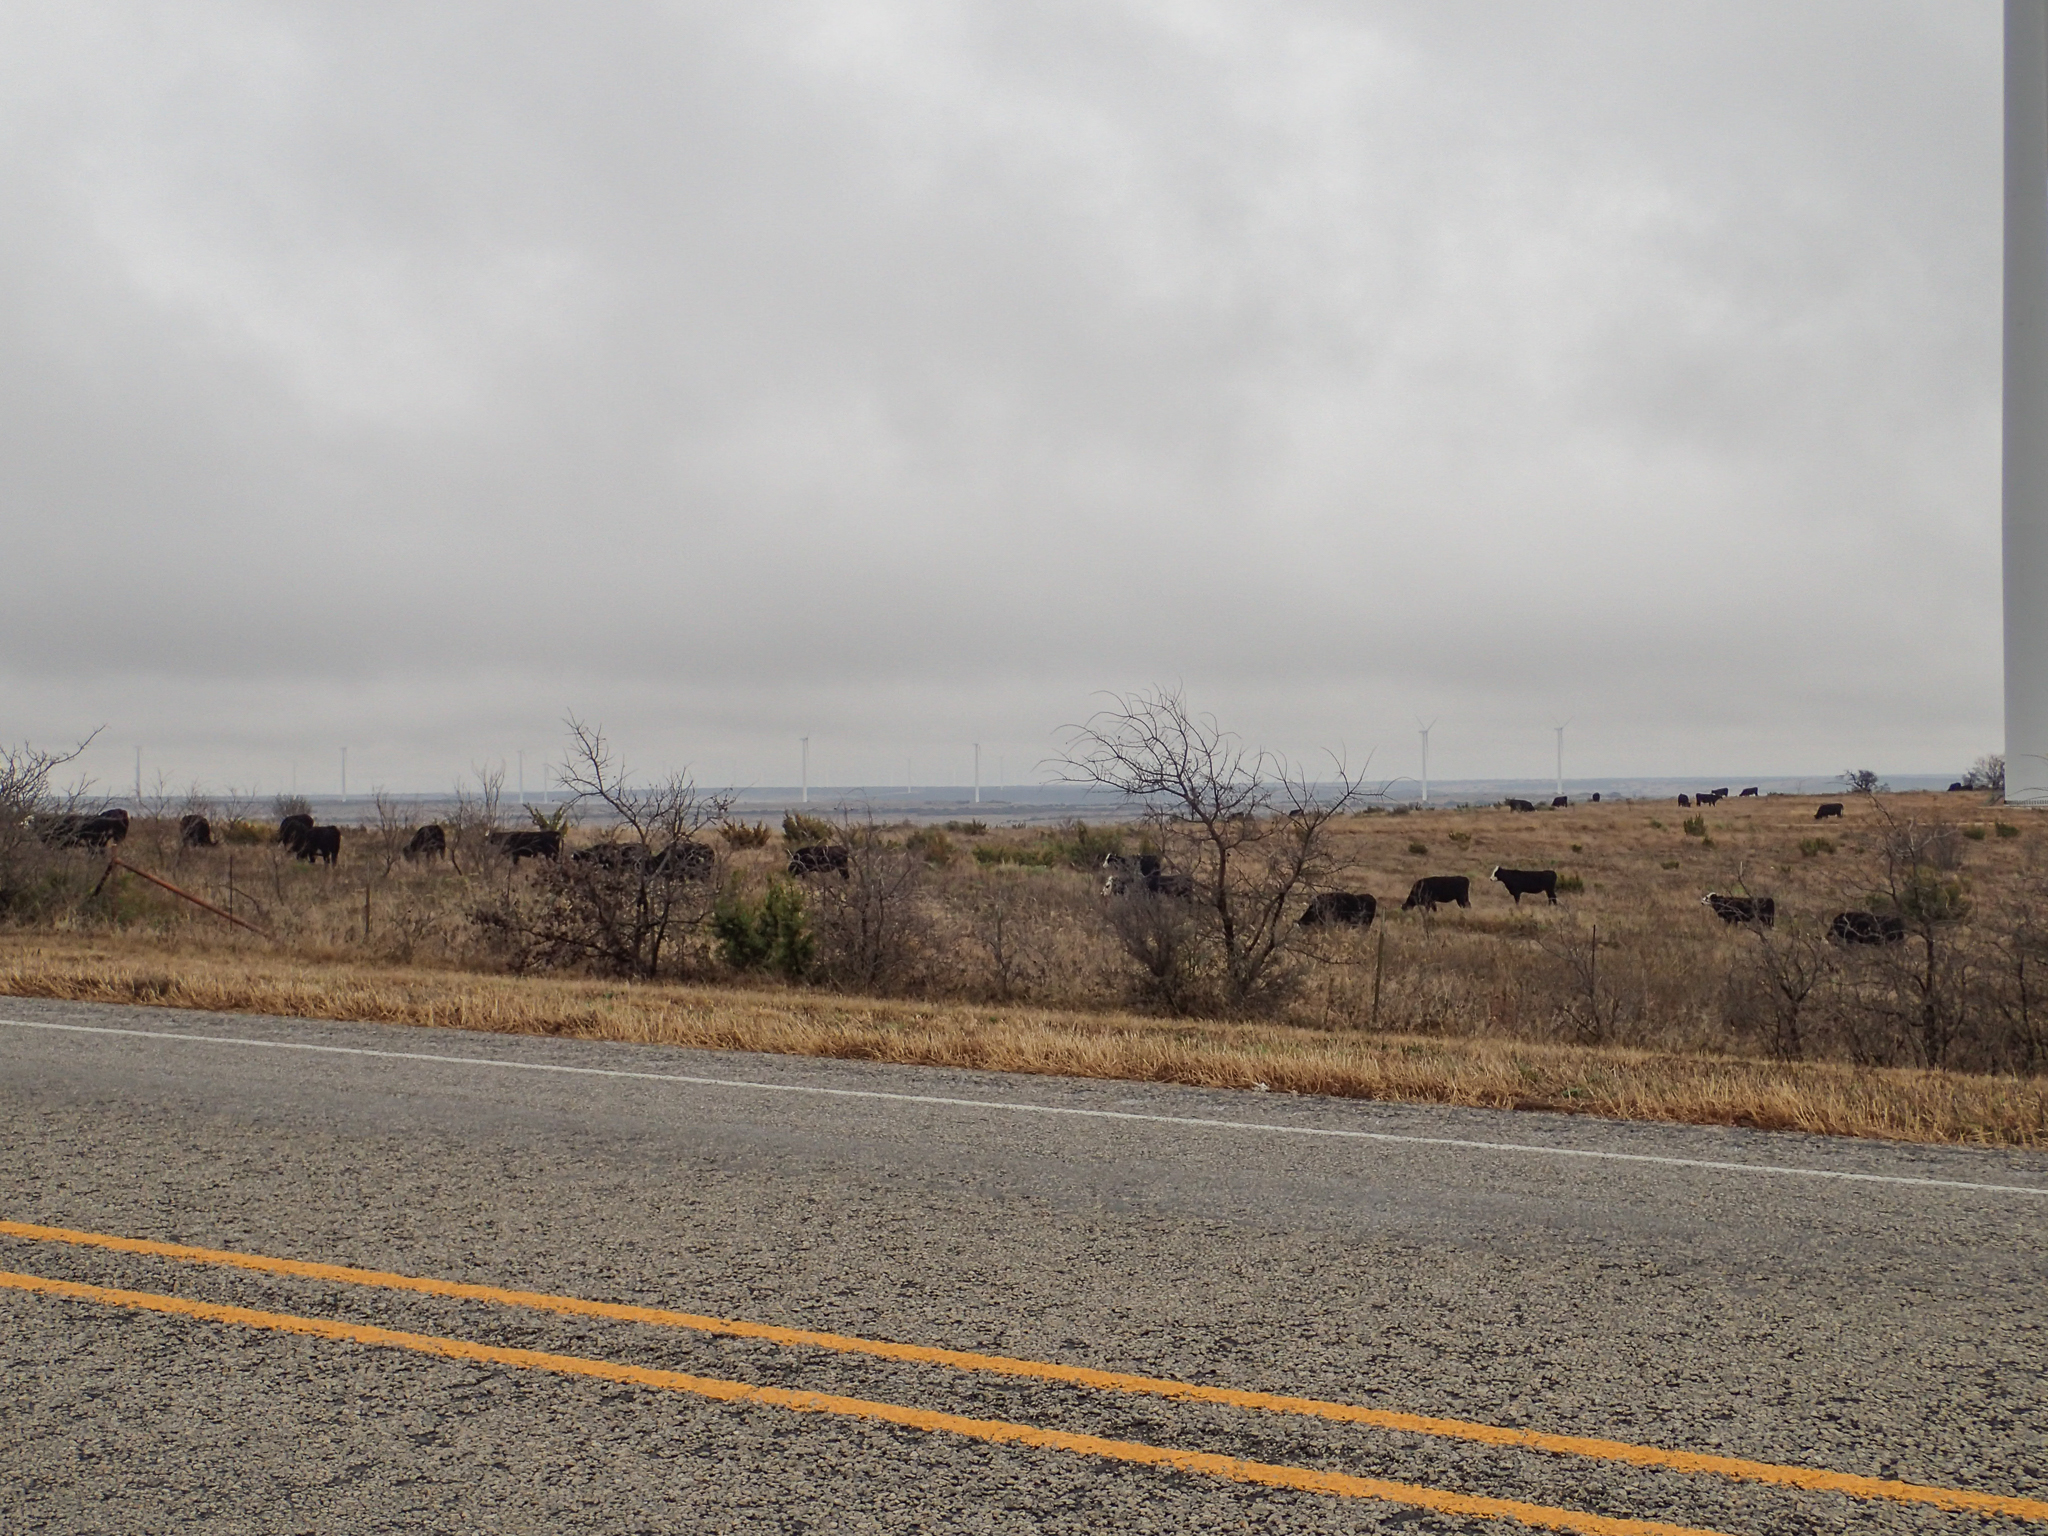 Hereford cows in West Texas (I'm guessing from the white faces)